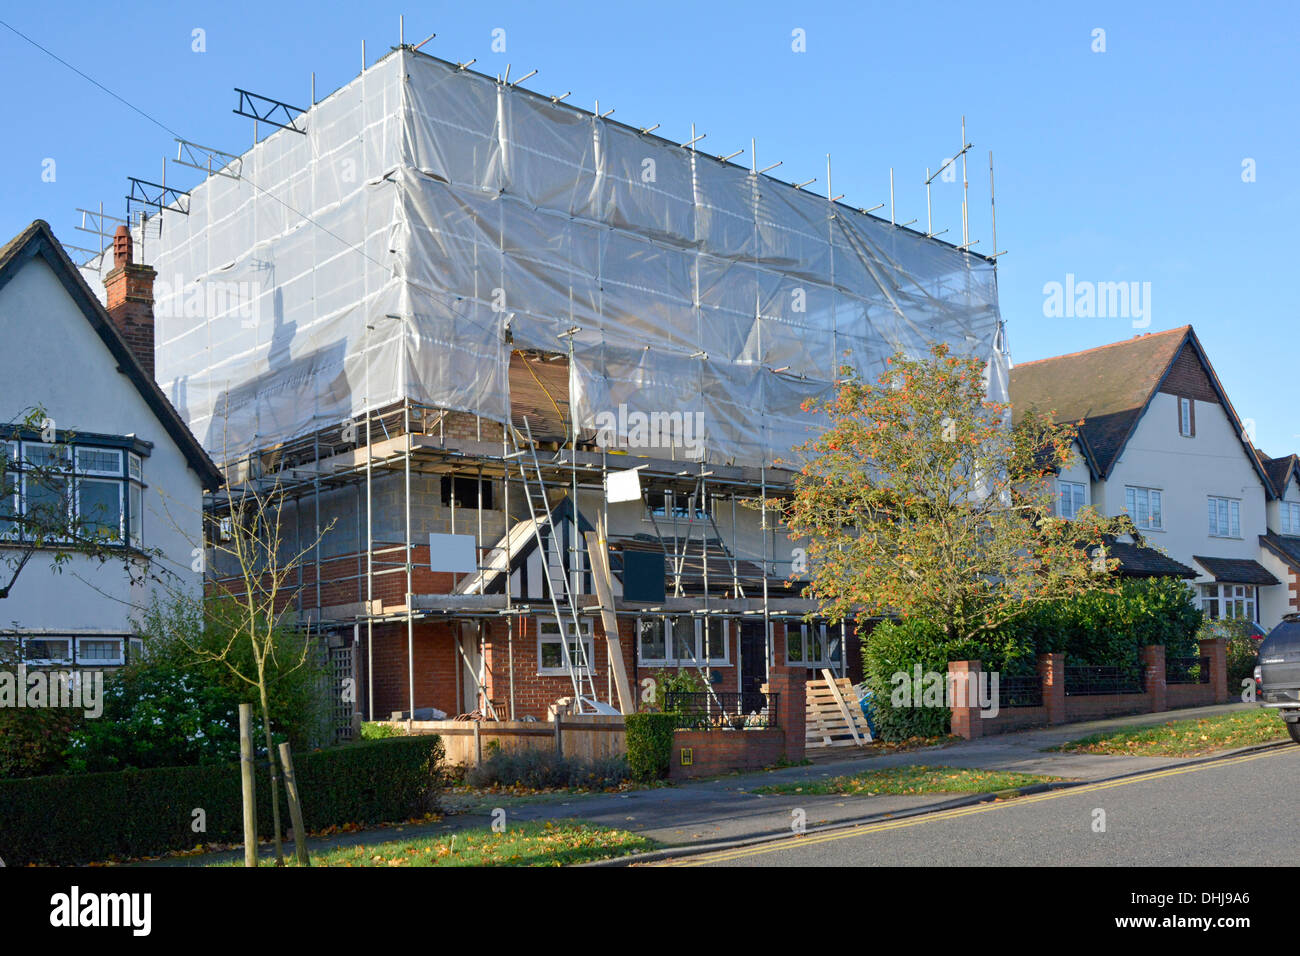 Detached house cocooned inside protective plastic sheeting during structural alterations Stock Photo